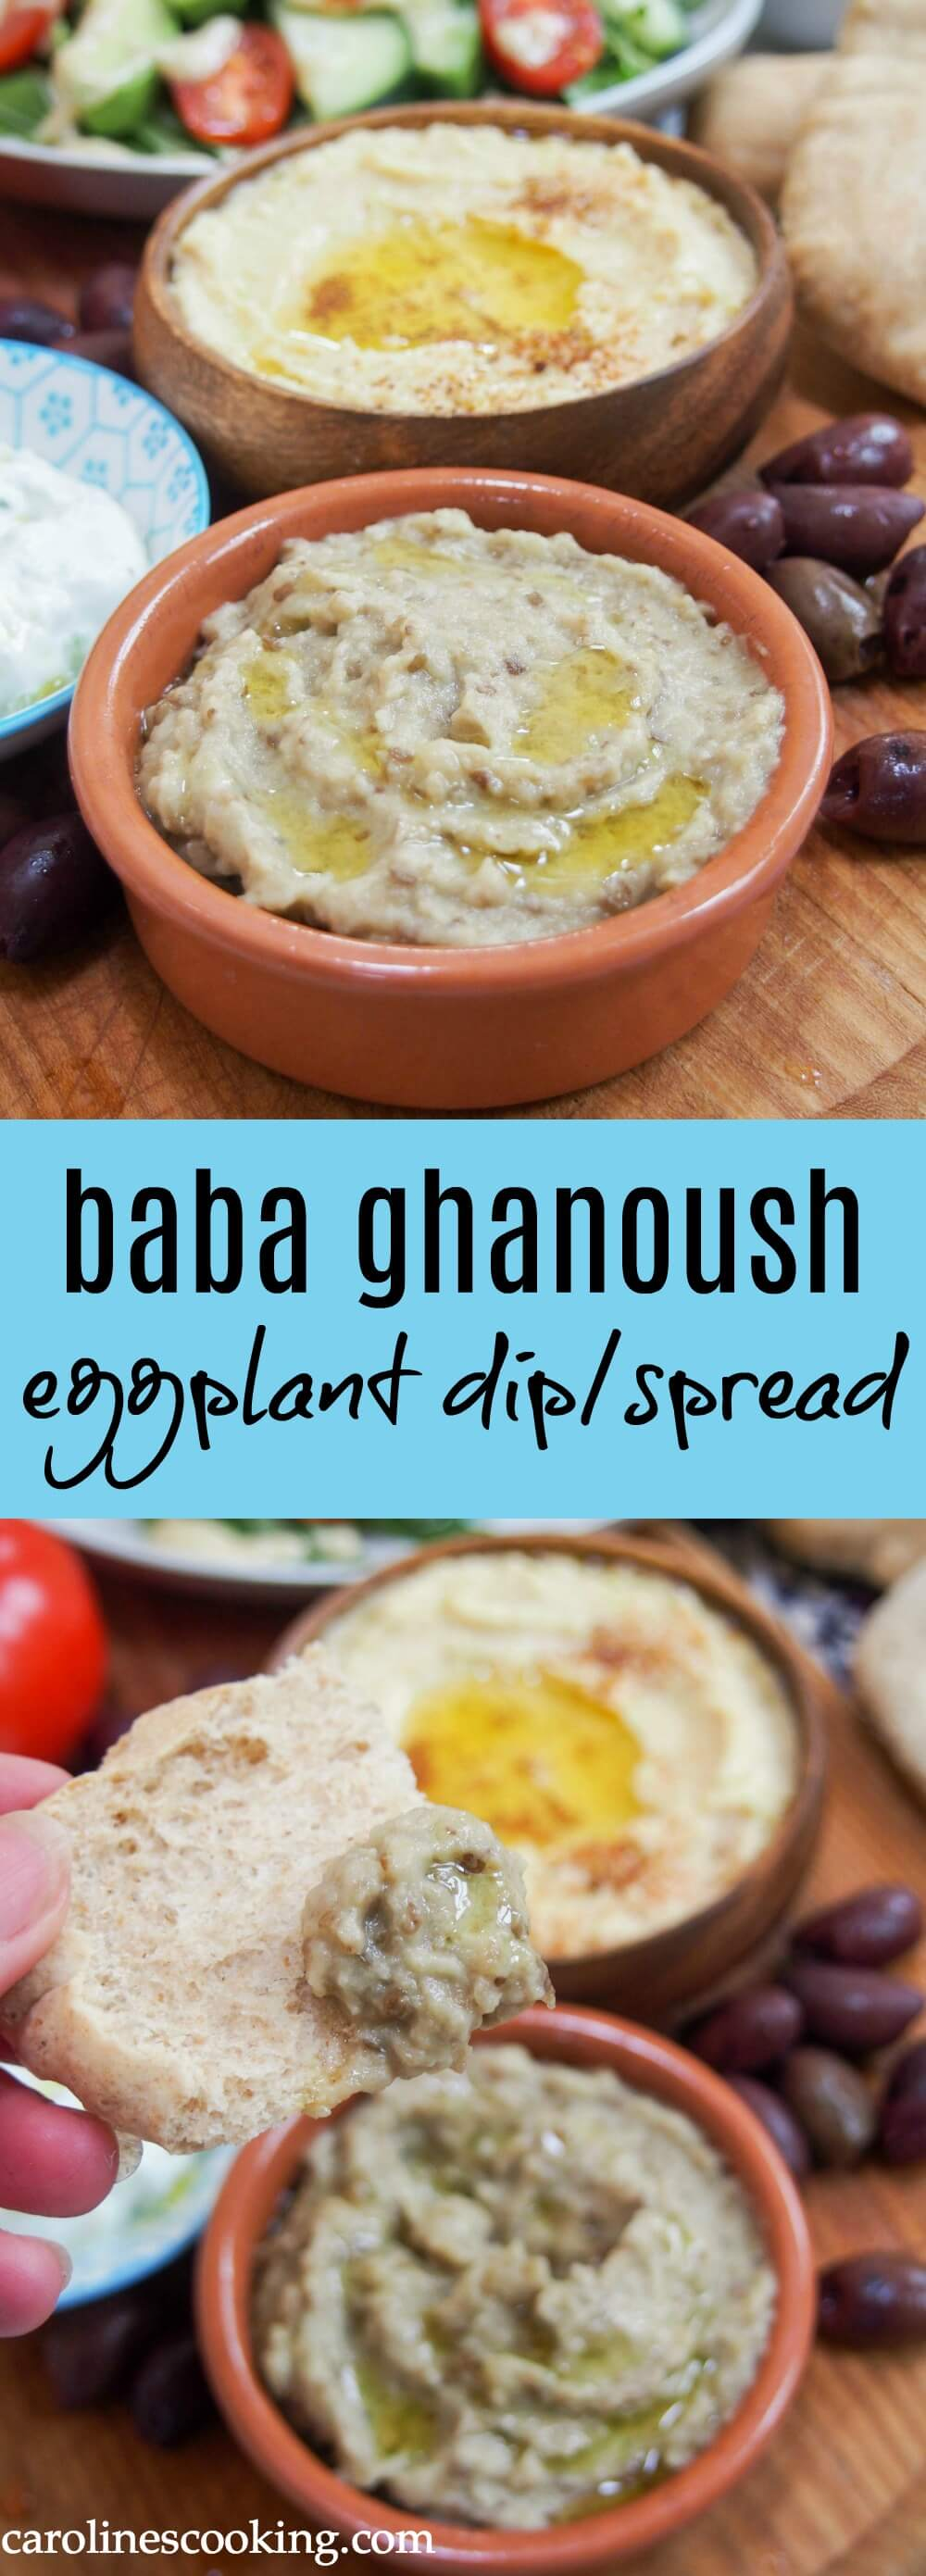 Baba ghanoush (or baba ganoush) is one of many dips/spread that's a staple on mezze plates. This eggplant dip tastes so creamy, with a wonderful smokey flavor, but it's entirely vegan. Easy, versatile and moreishly delicious. #eggplant #mezze #dip #mediterraneanfood #vegan